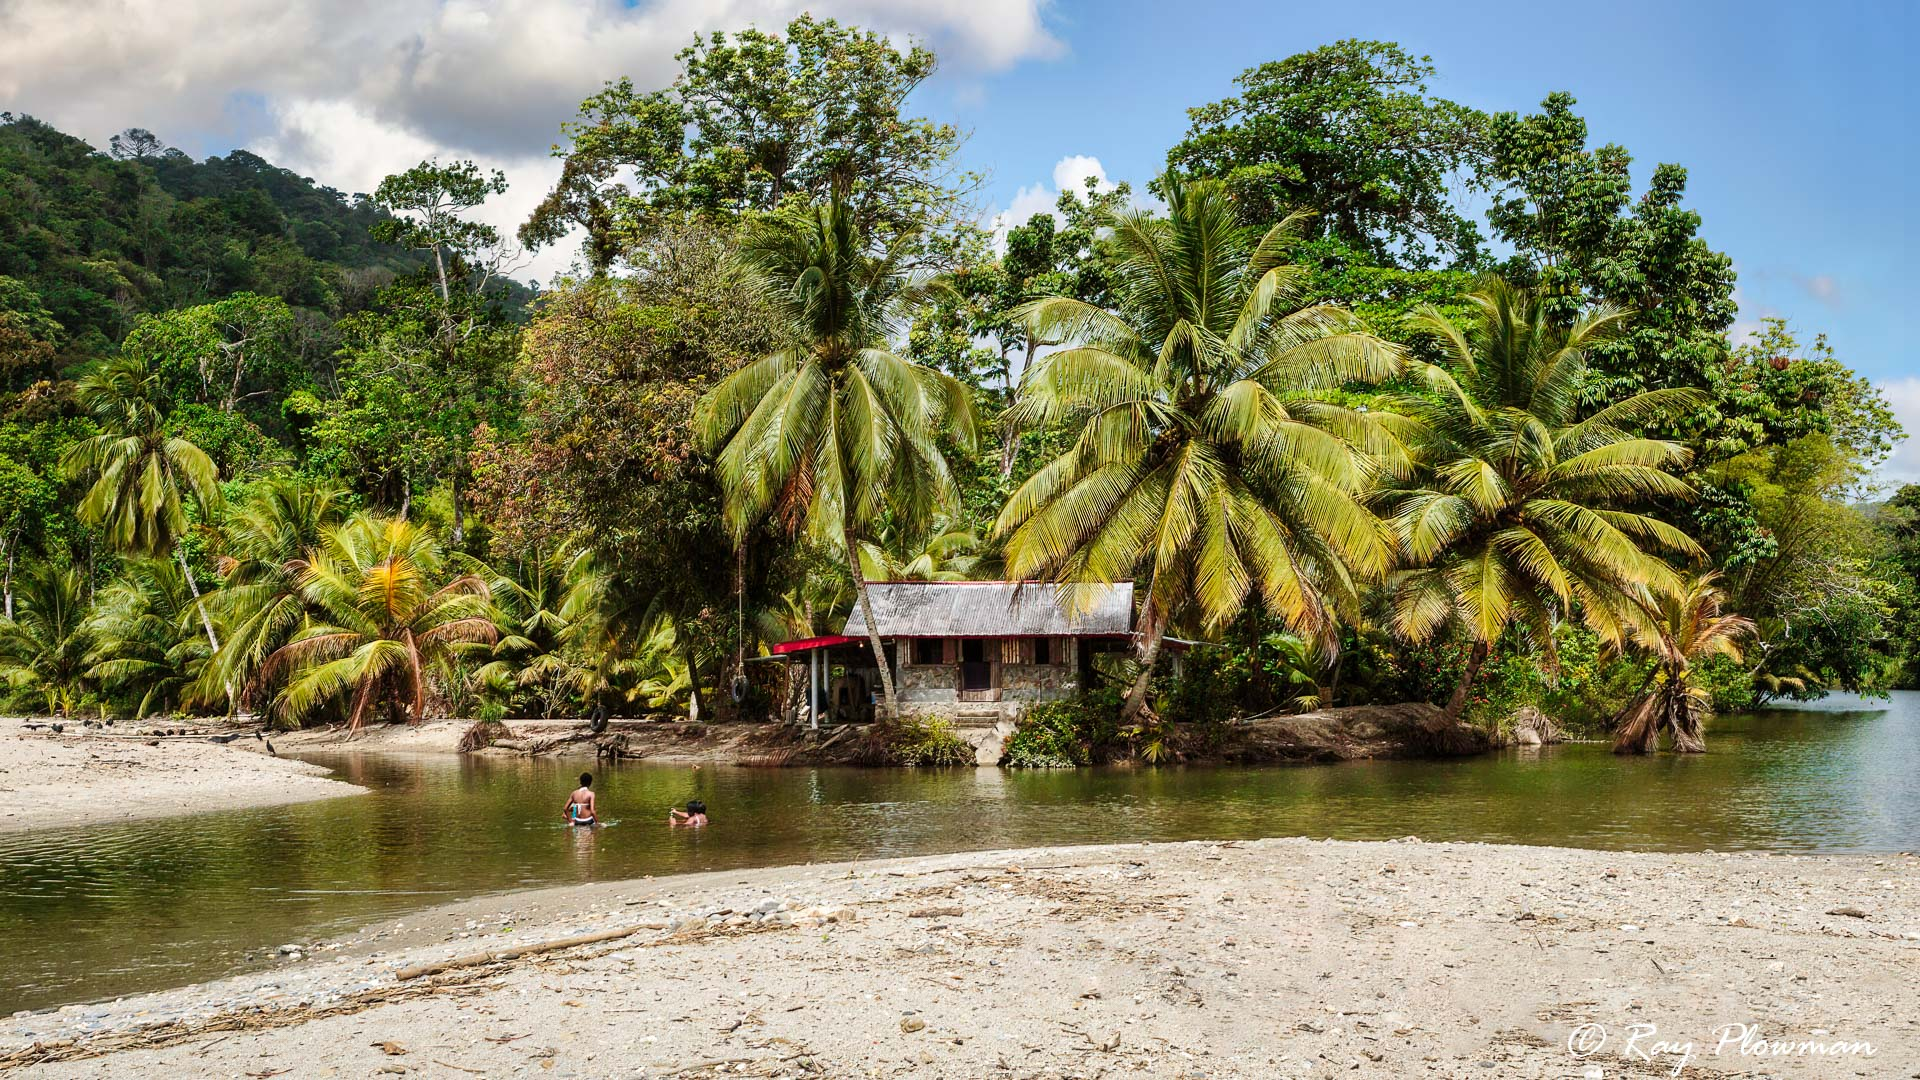 House on Grande Riviere River, North East Coast of Trinidad